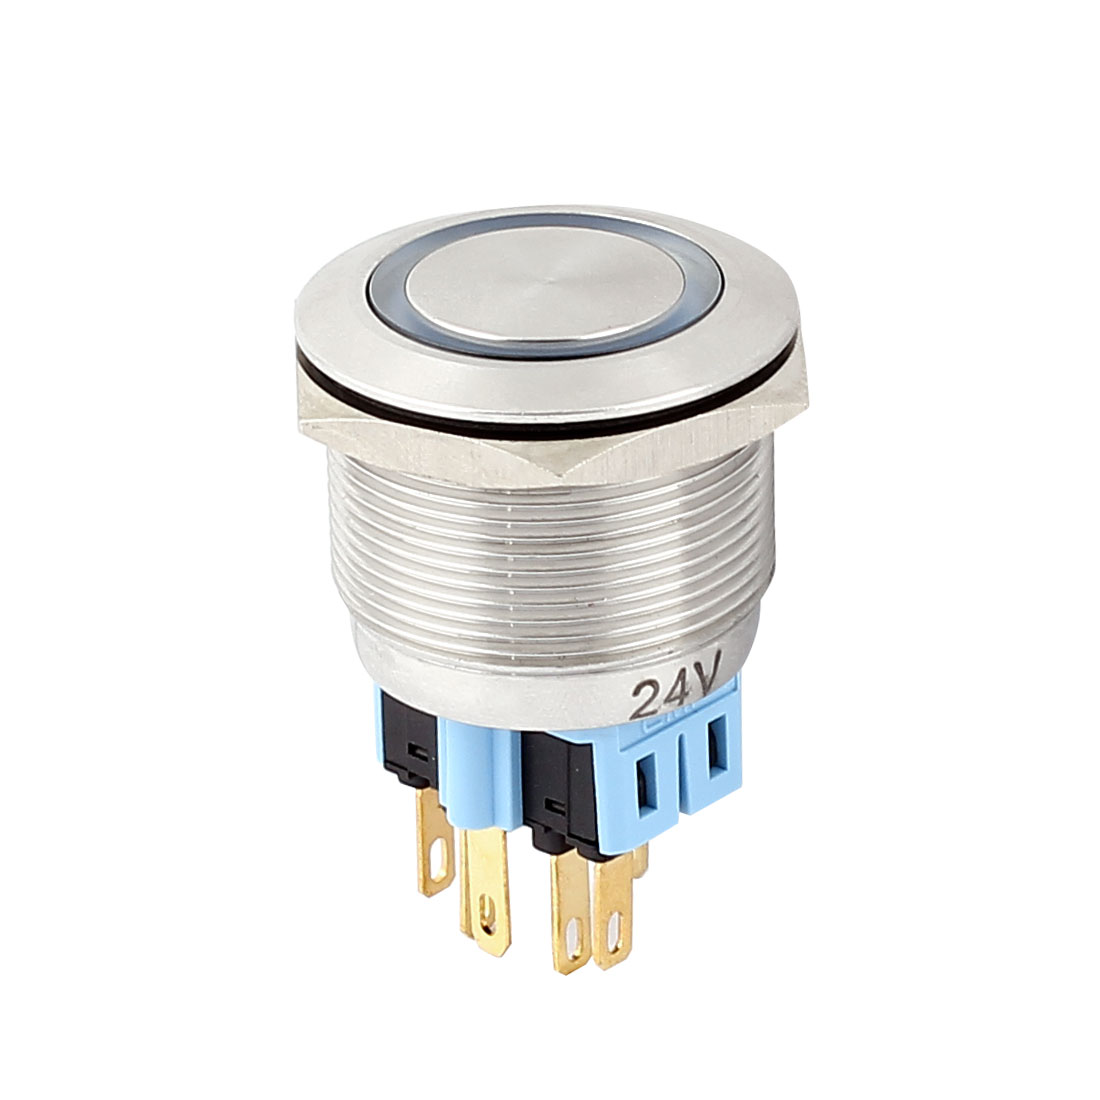 DC 24V 20mm Blue LED Light 25mm Mounted Thread 6 Pins DPST NO/NC Momentary Push Button Switch